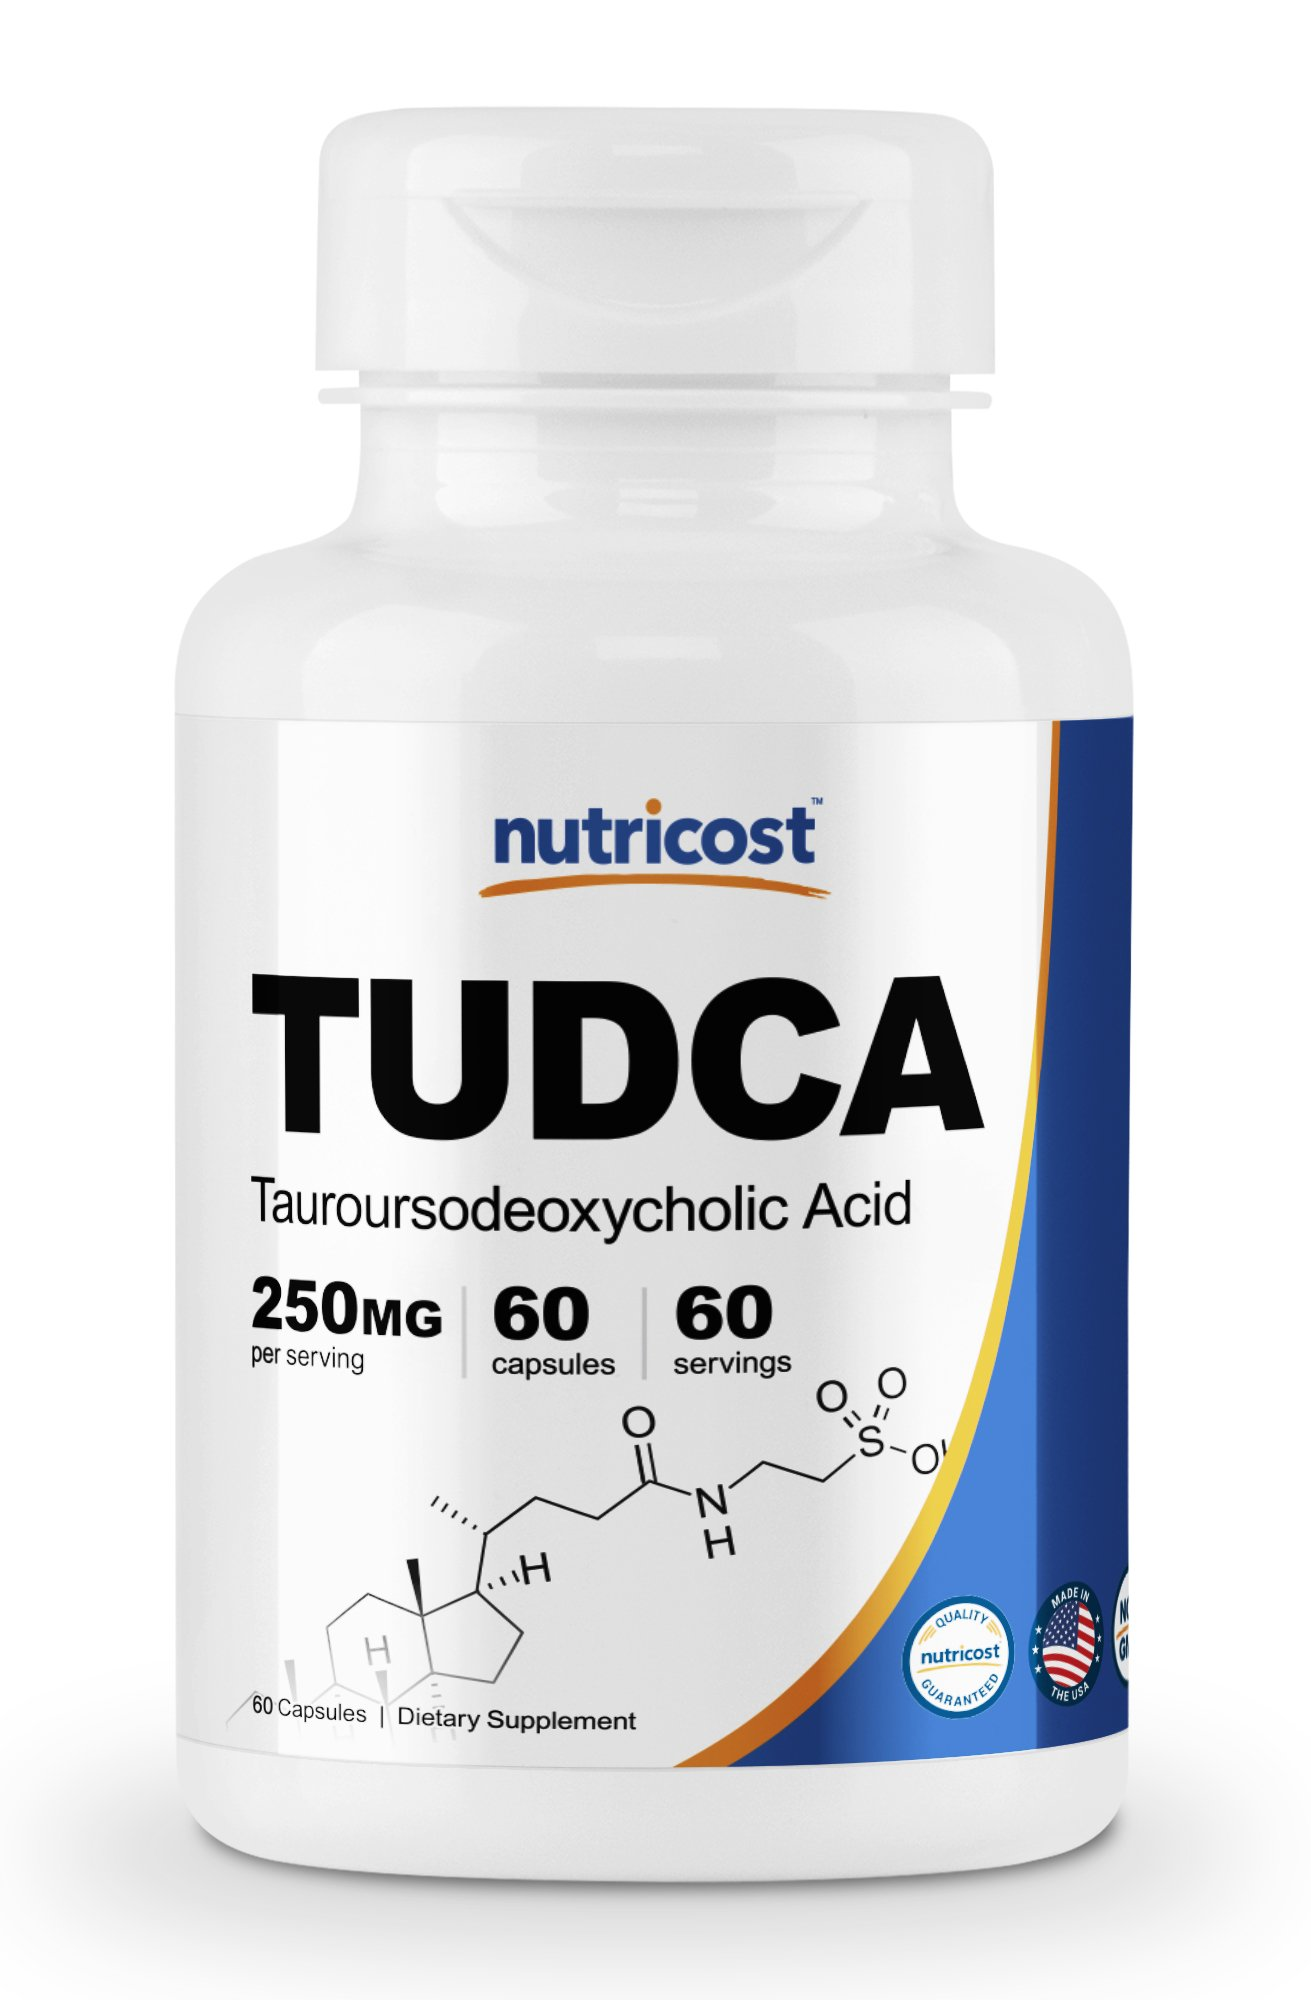 Nutricost Tudca 250mg, 60 Capsules (2 Bottles) by Nutricost (Image #7)